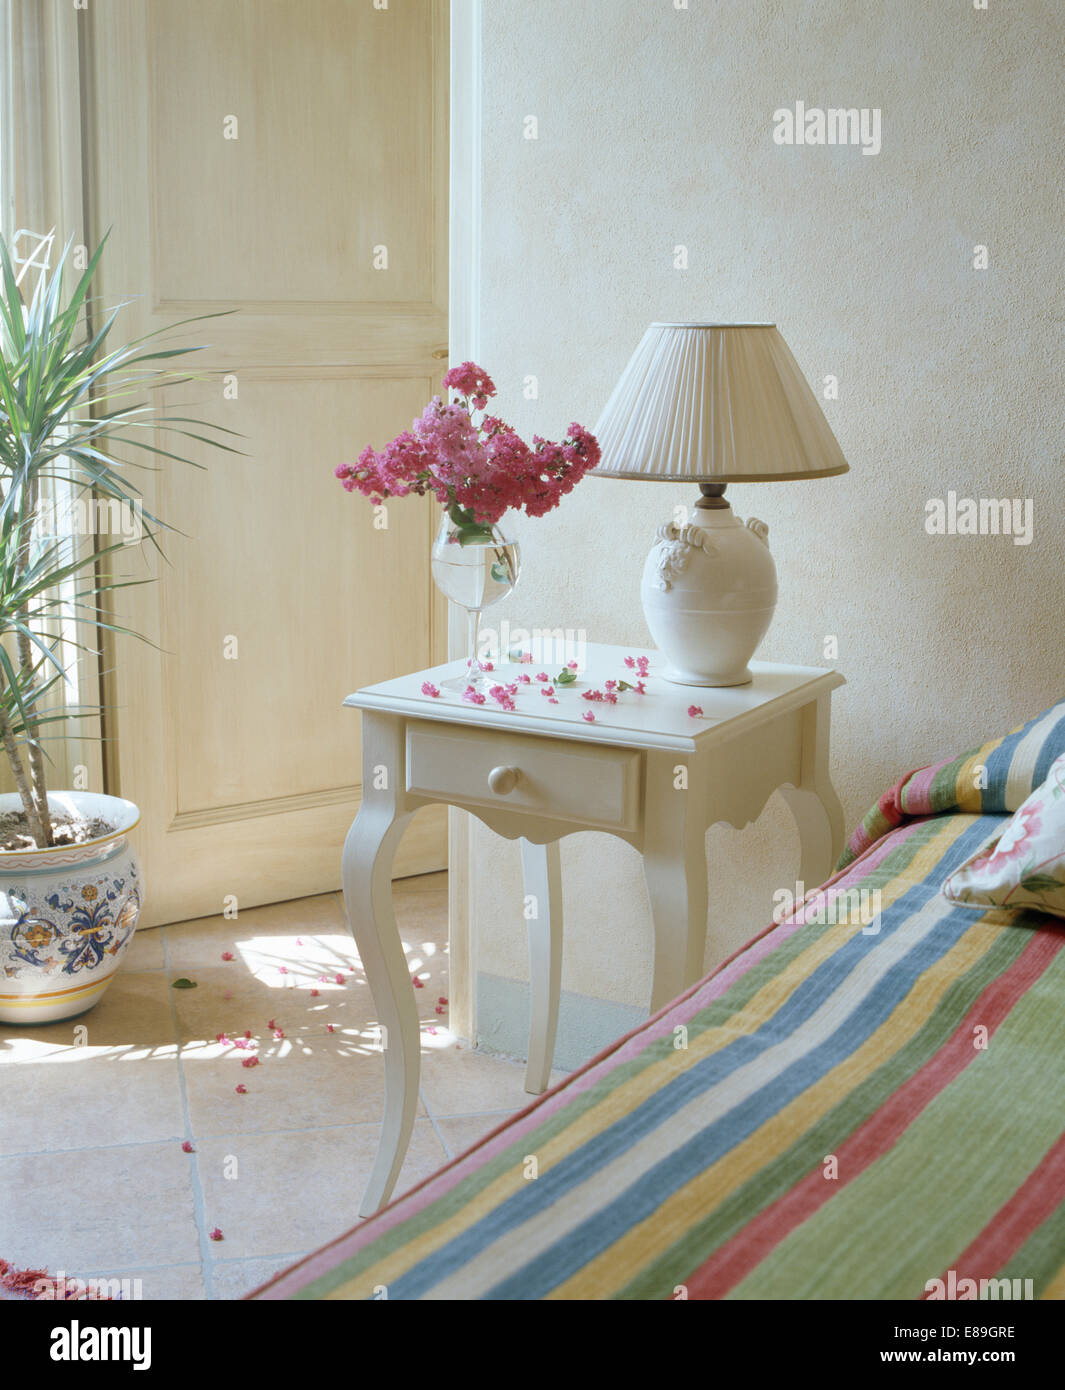 White lamp on bedside table with vase of pink flowers in bedroom white lamp on bedside table with vase of pink flowers in bedroom with colourful striped cover on the bed aloadofball Choice Image